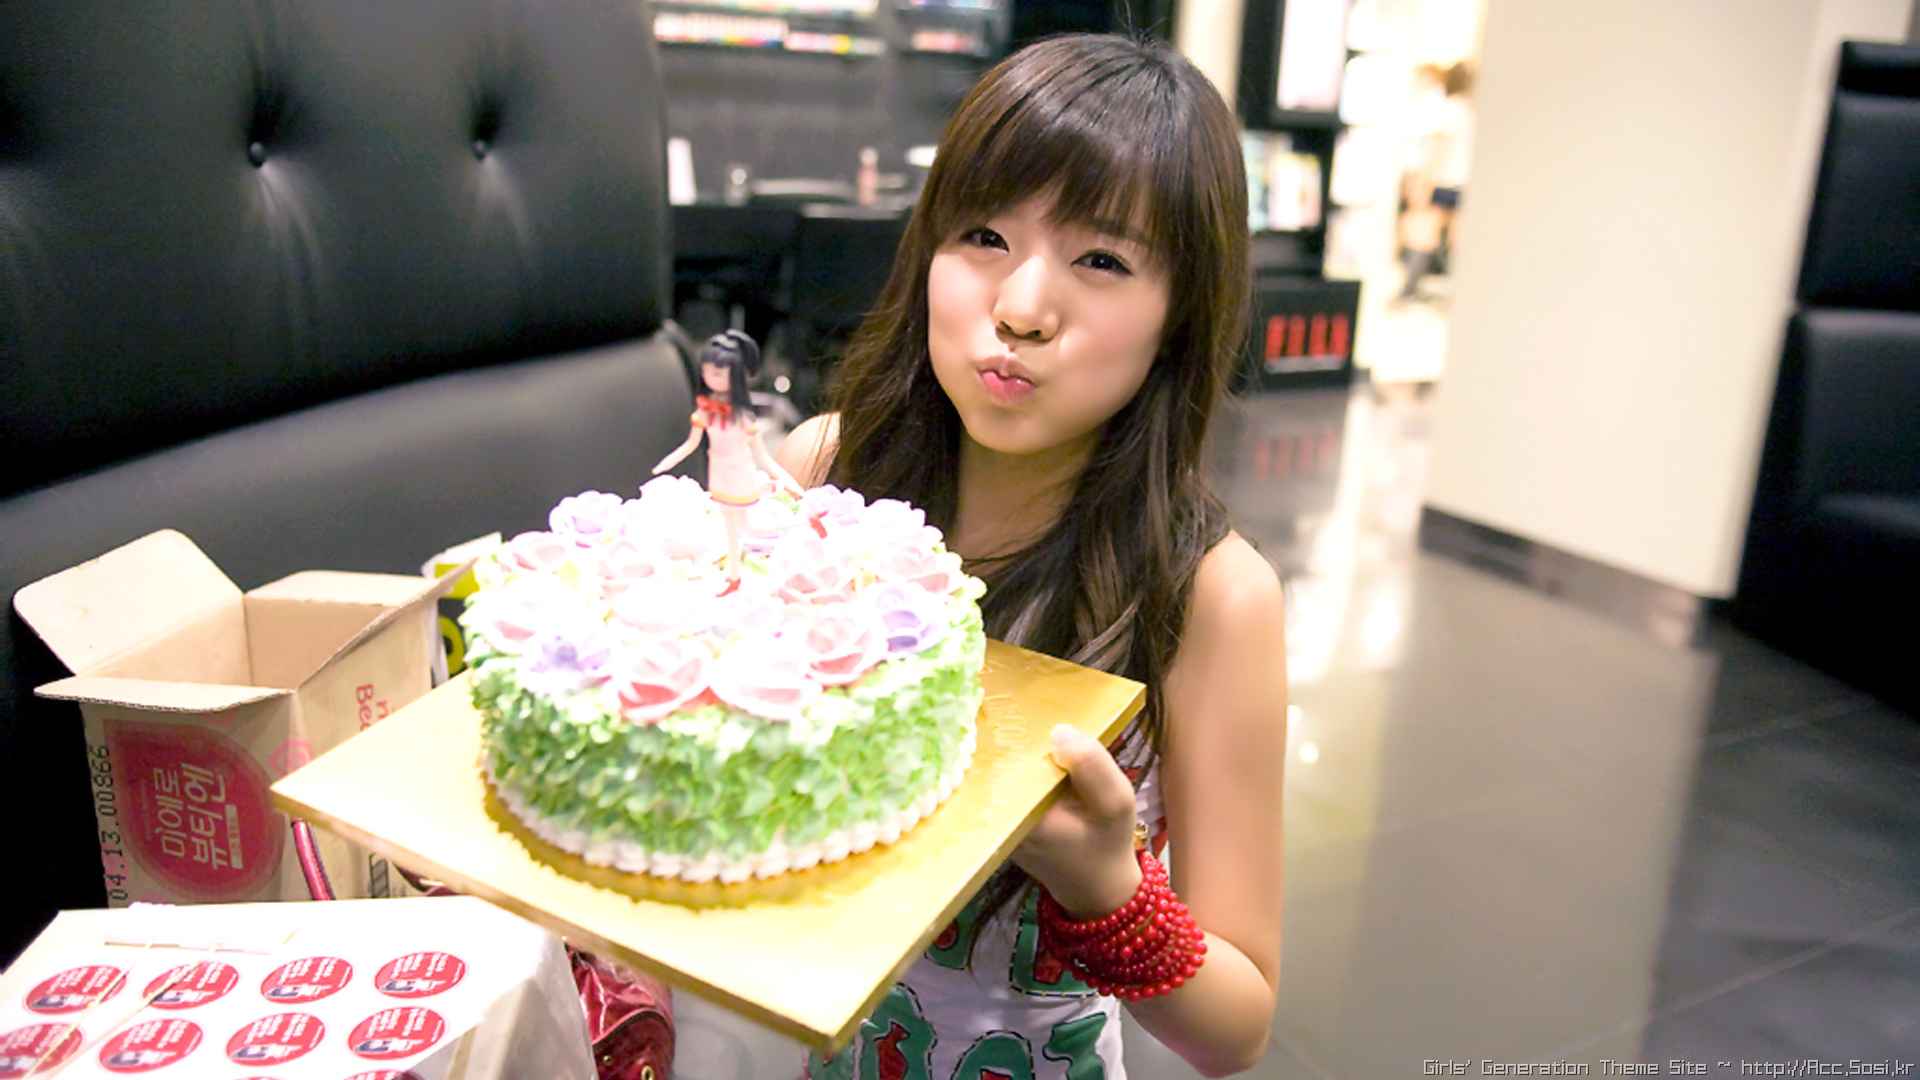 Birthday Cake Images With Name Sunny : Pin Sunny Snsd Happy Birthday To 1551989 1552013 Girls ...